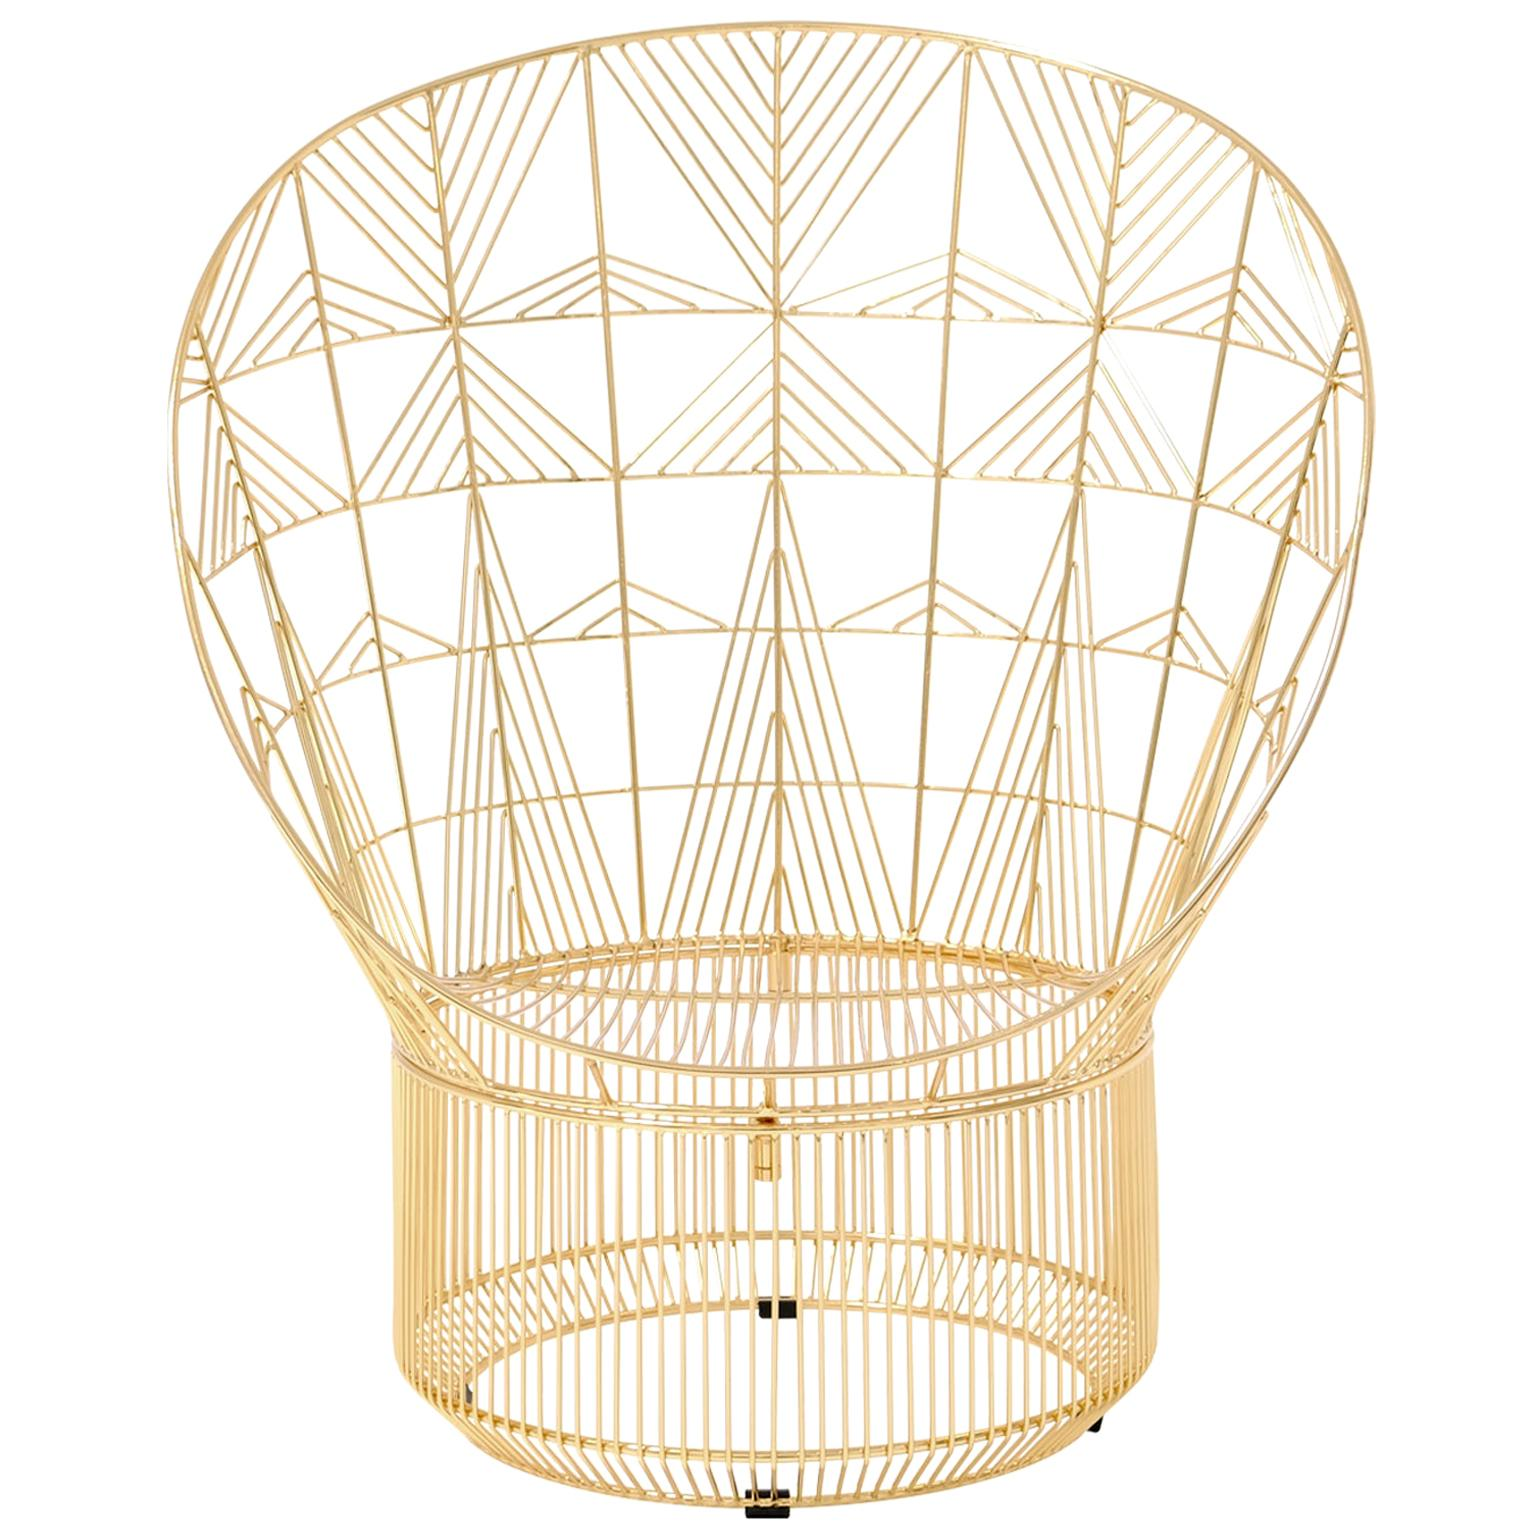 Modern Peacock Lounge Chair, Lounge Chair by Bend Goods in Gold